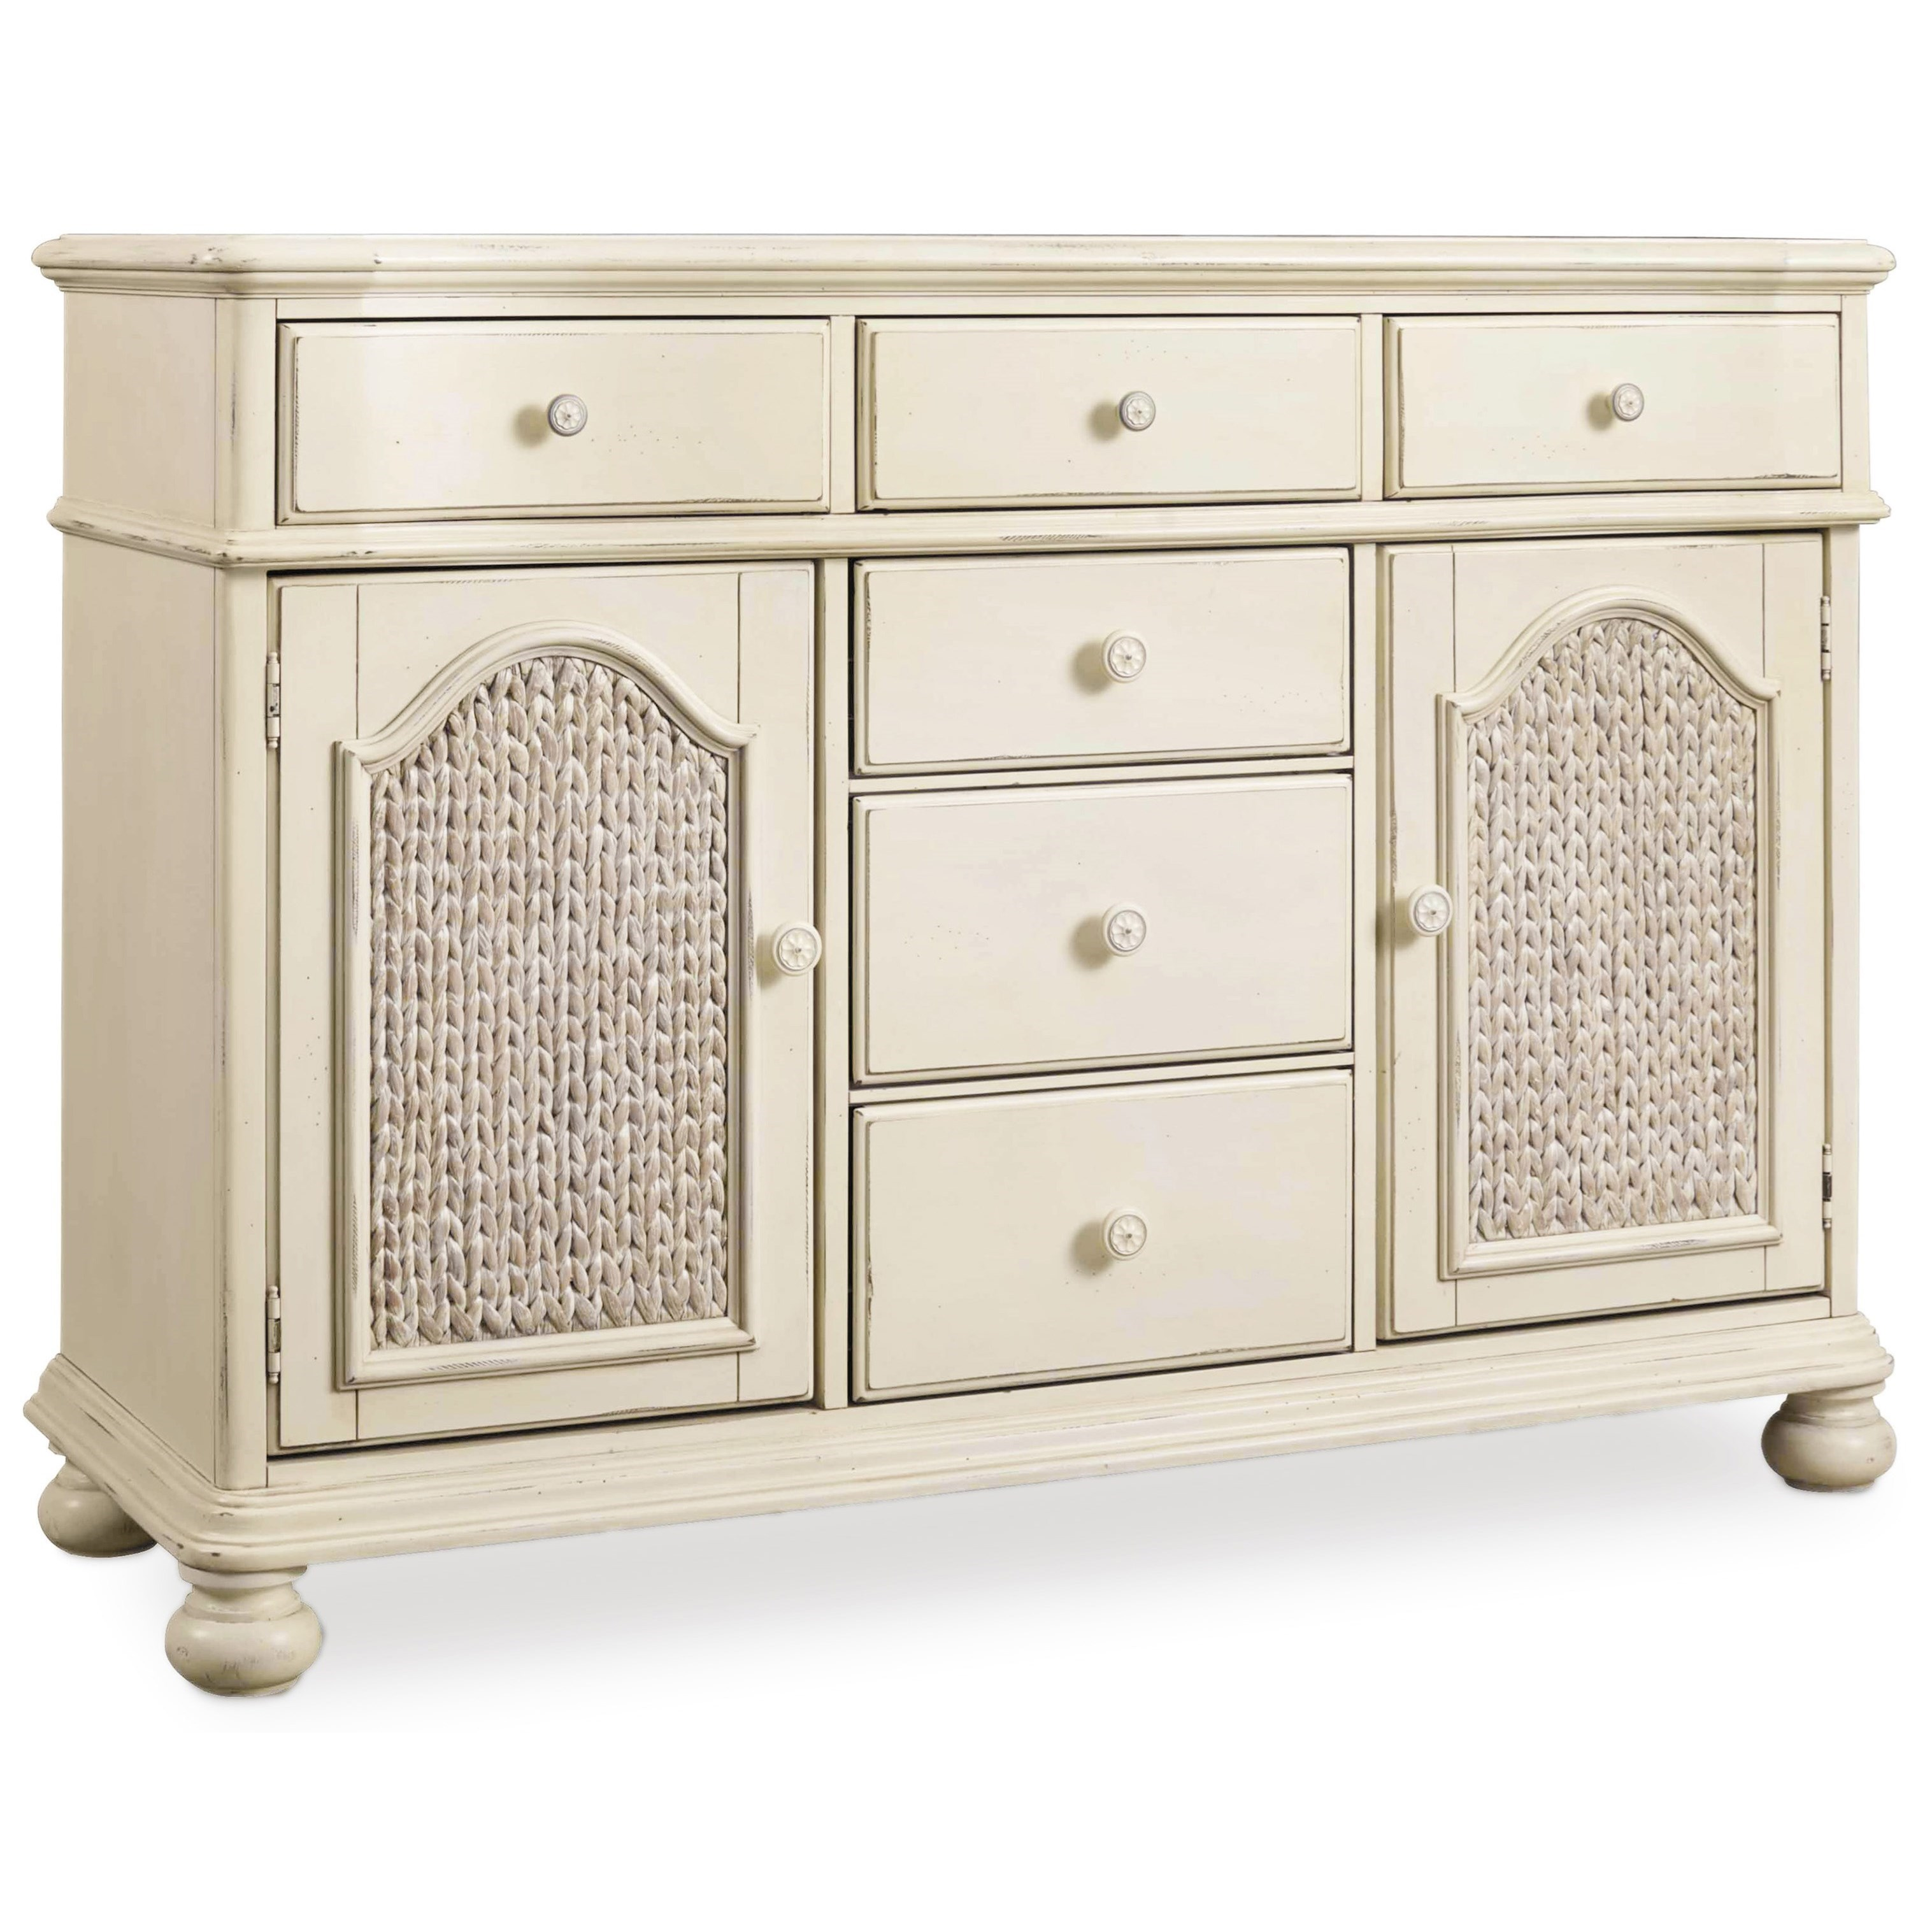 Hooker Furniture Sandcastle 5900 75900 Wh Buffet With